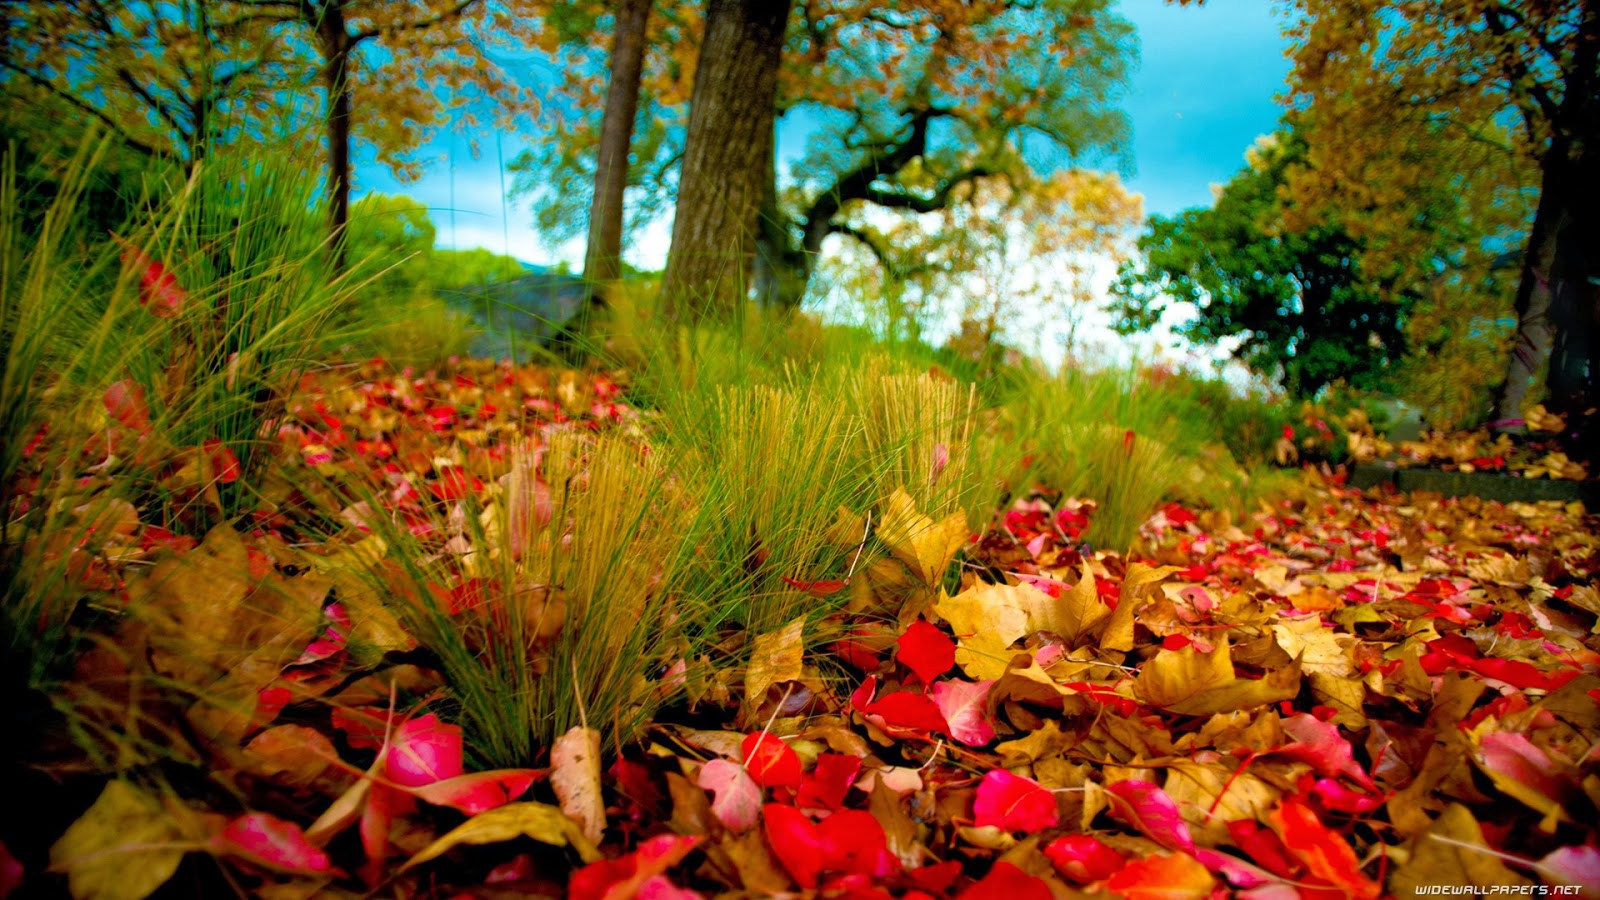 HD Wallpapers 1080p Nature autumn | Nice Pics Gallery